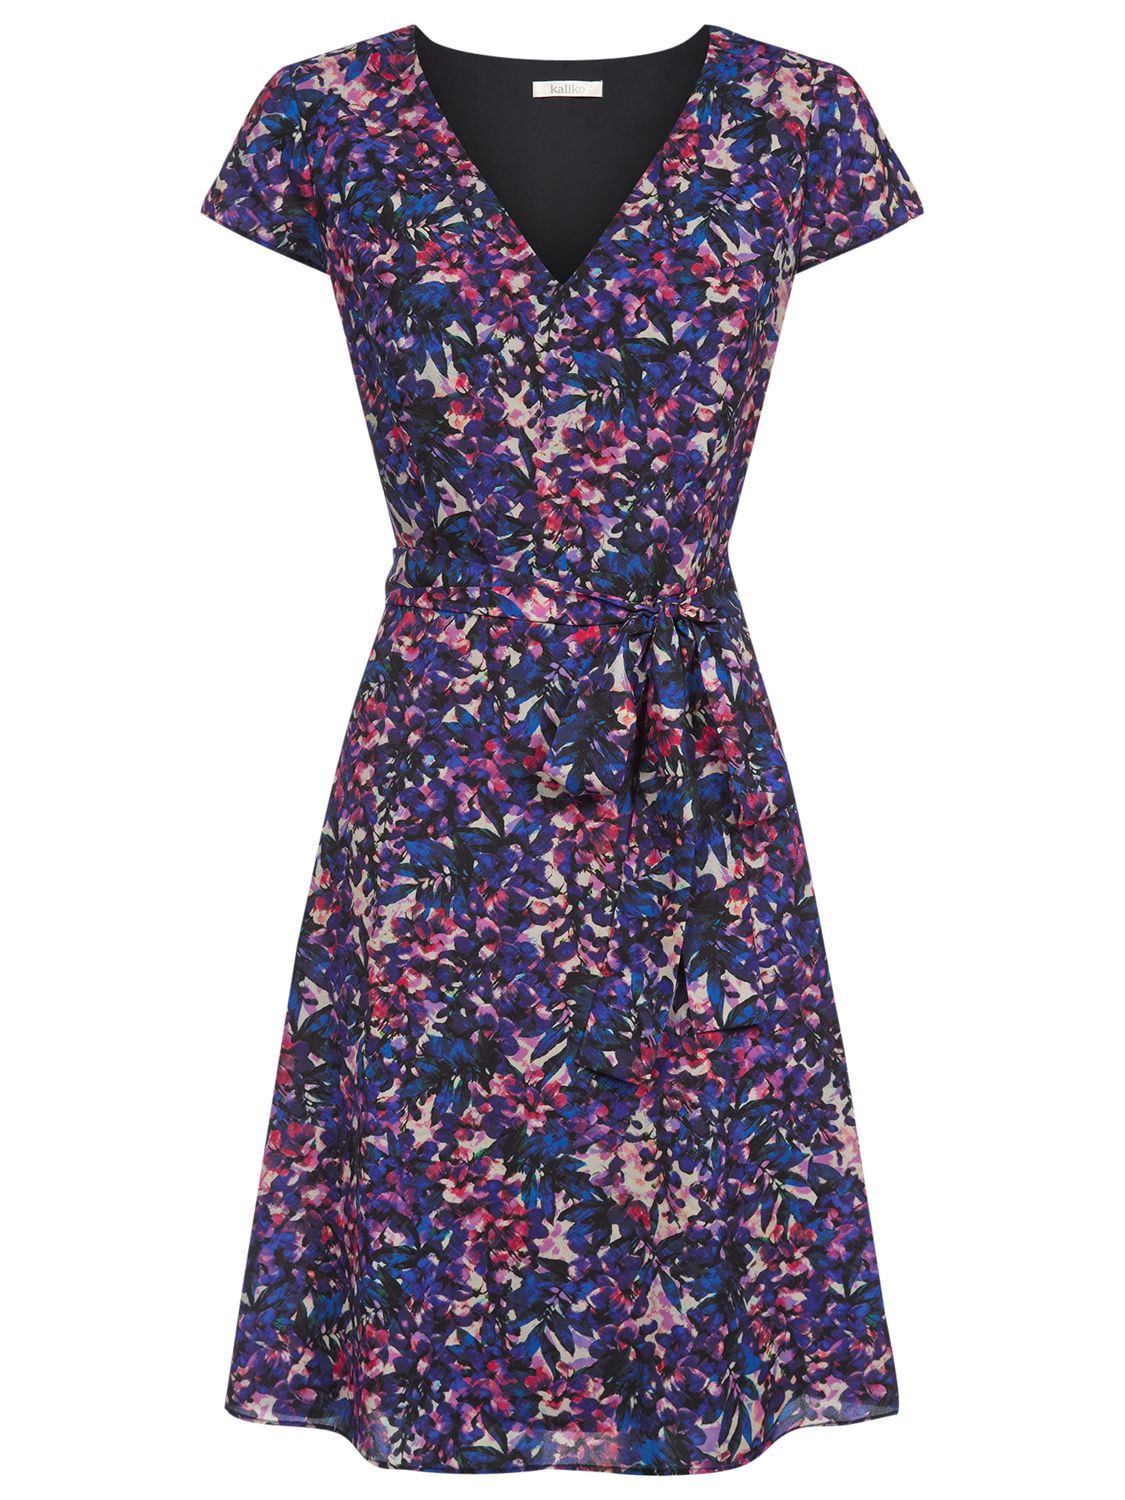 kaliko alexa print prom dress multi navy, kaliko, alexa, print, prom, dress, multi, navy, clearance, womenswear offers, womens dresses offers, special offers, 20% off selected kaliko, women, inactive womenswear, new reductions, womens dresses, 1619487